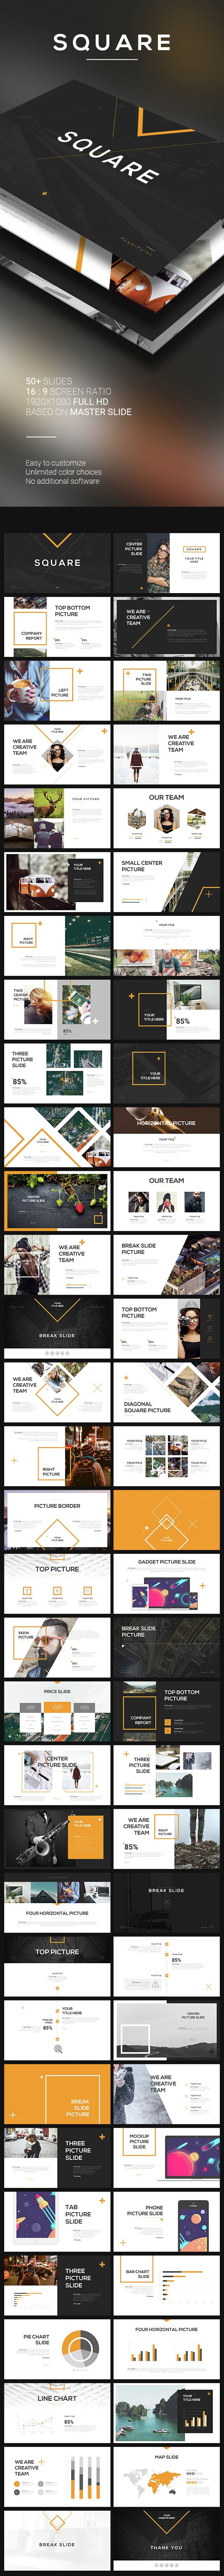 Square PowerPoint Template - PowerPoint Templates Presentation Templates